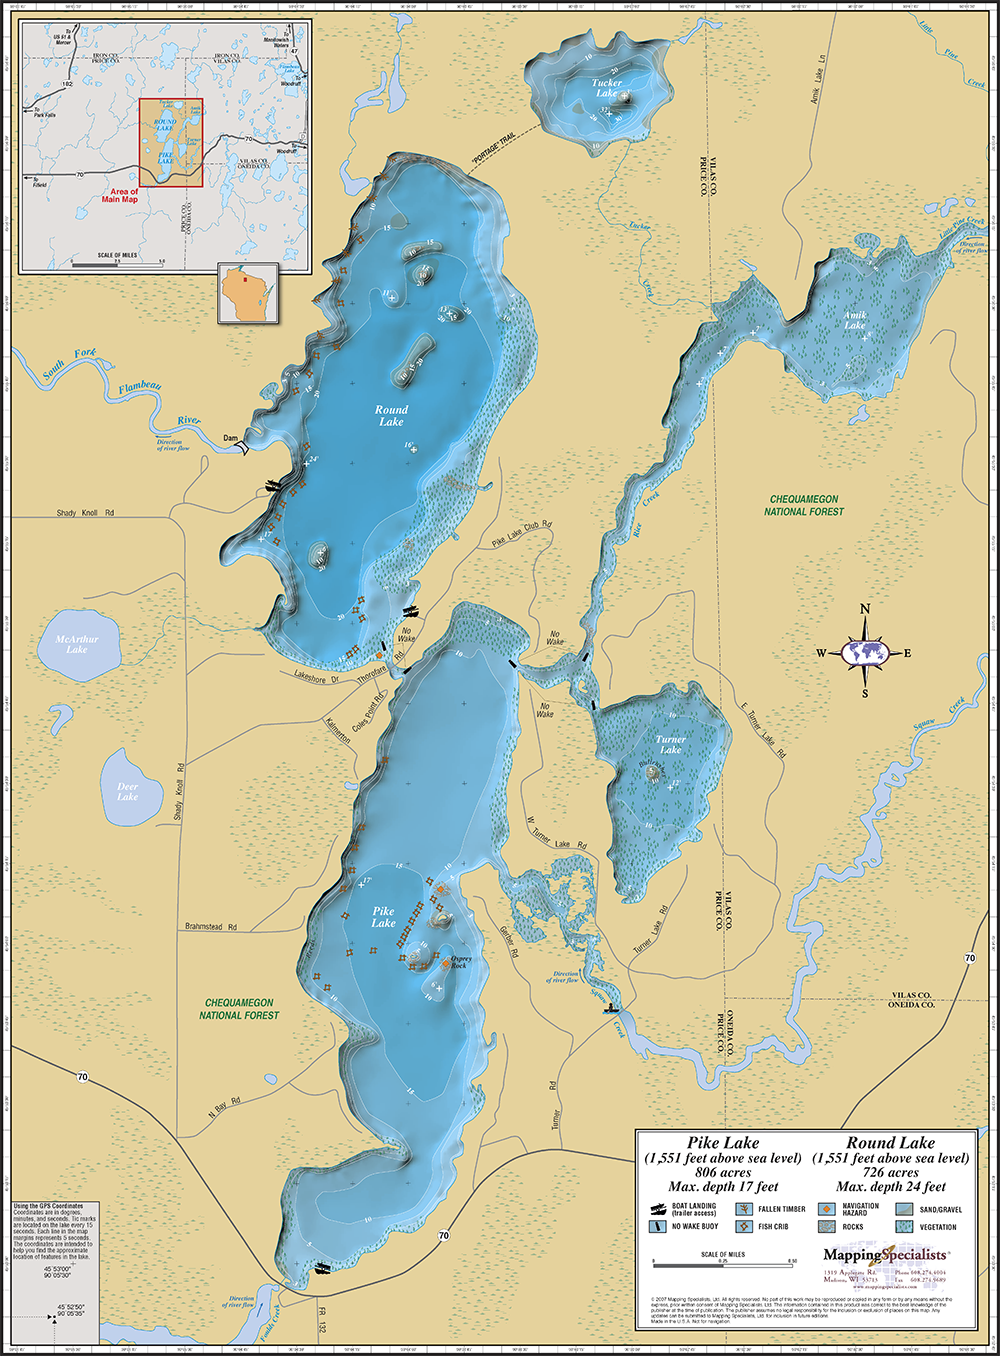 Pike And Round Lakes Wall Map